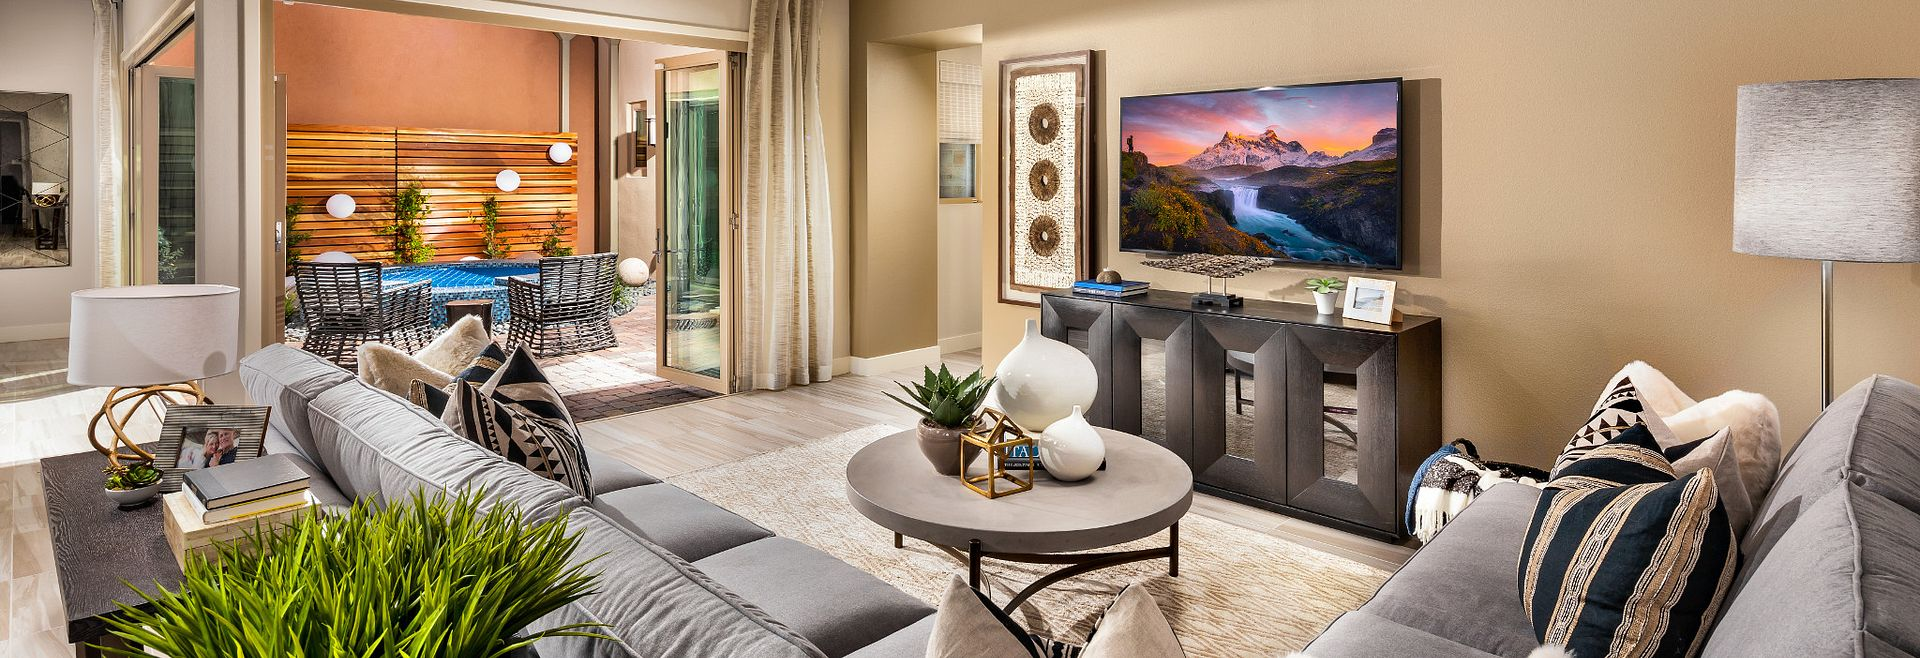 Trilogy Summerlin Indulge Great Room